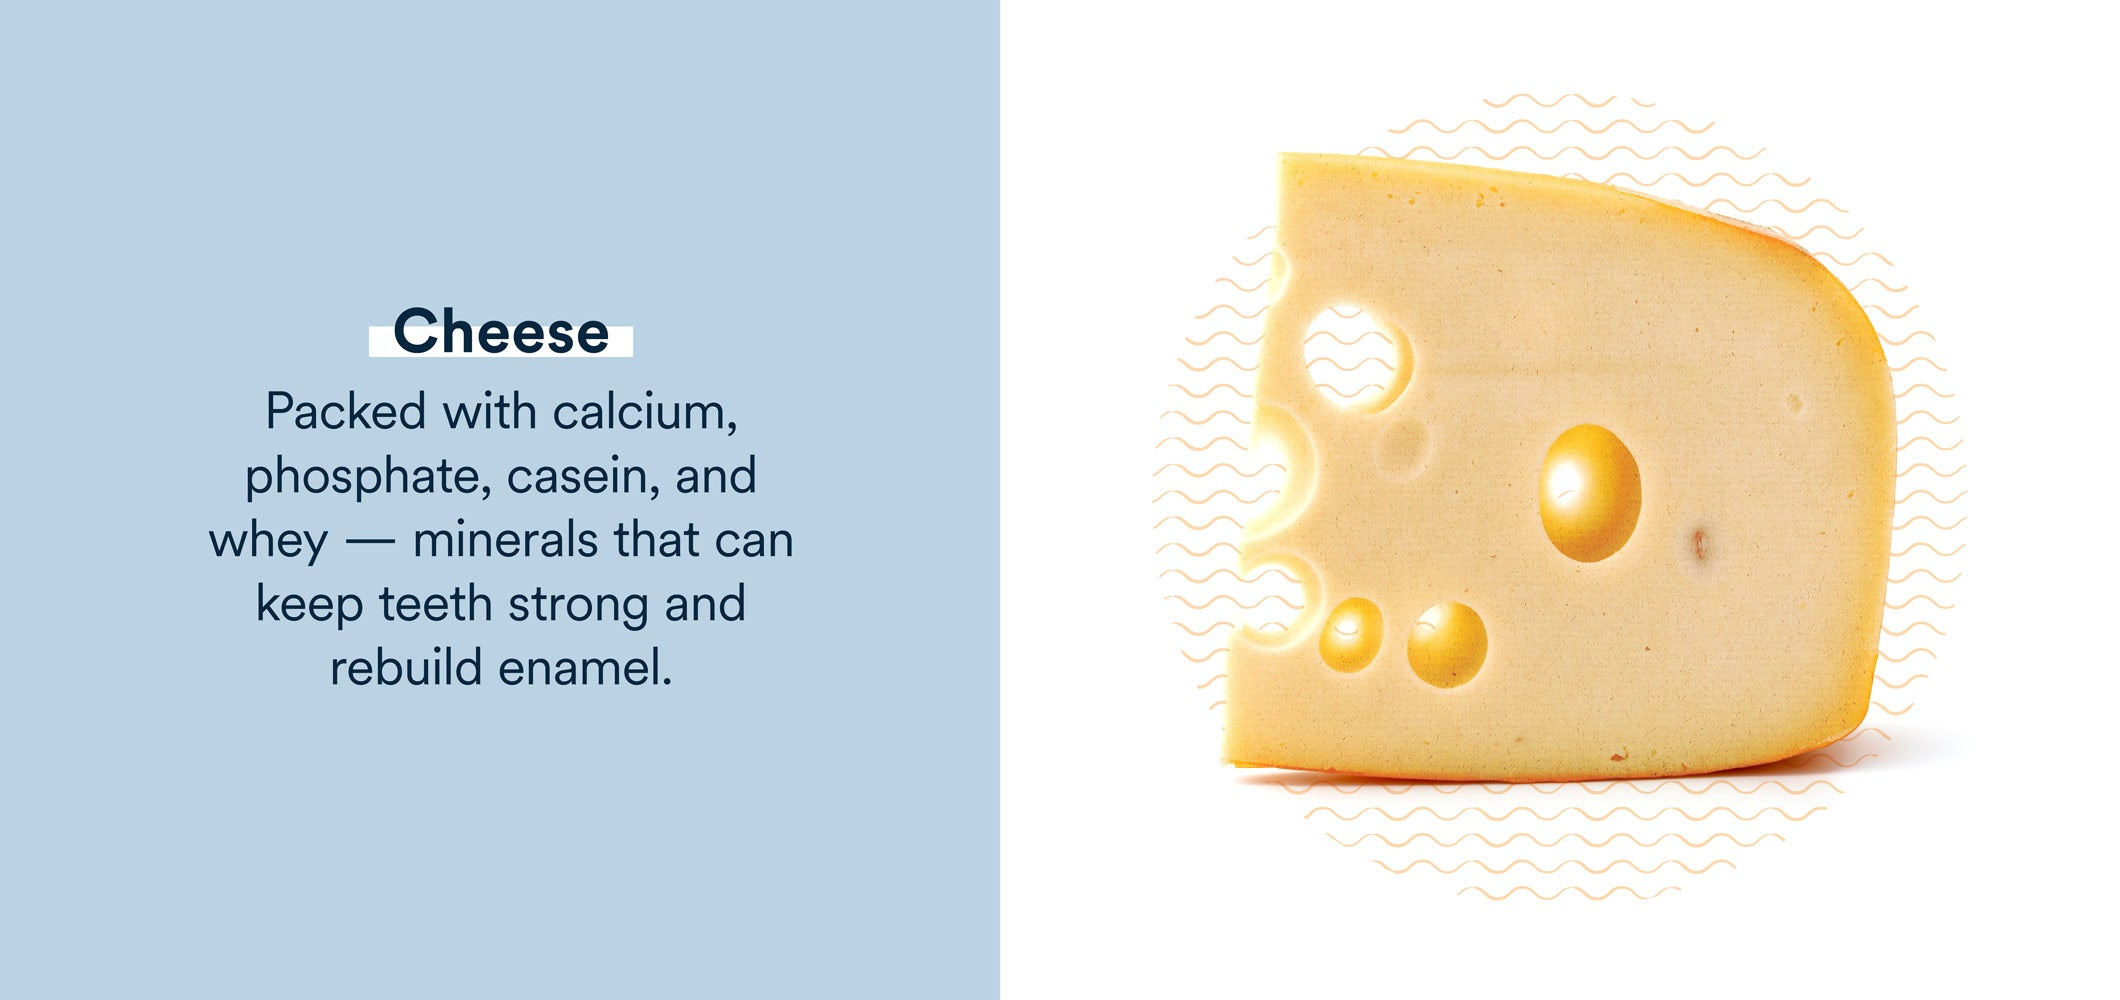 cheese is packed with minerals that can keep teeth strong